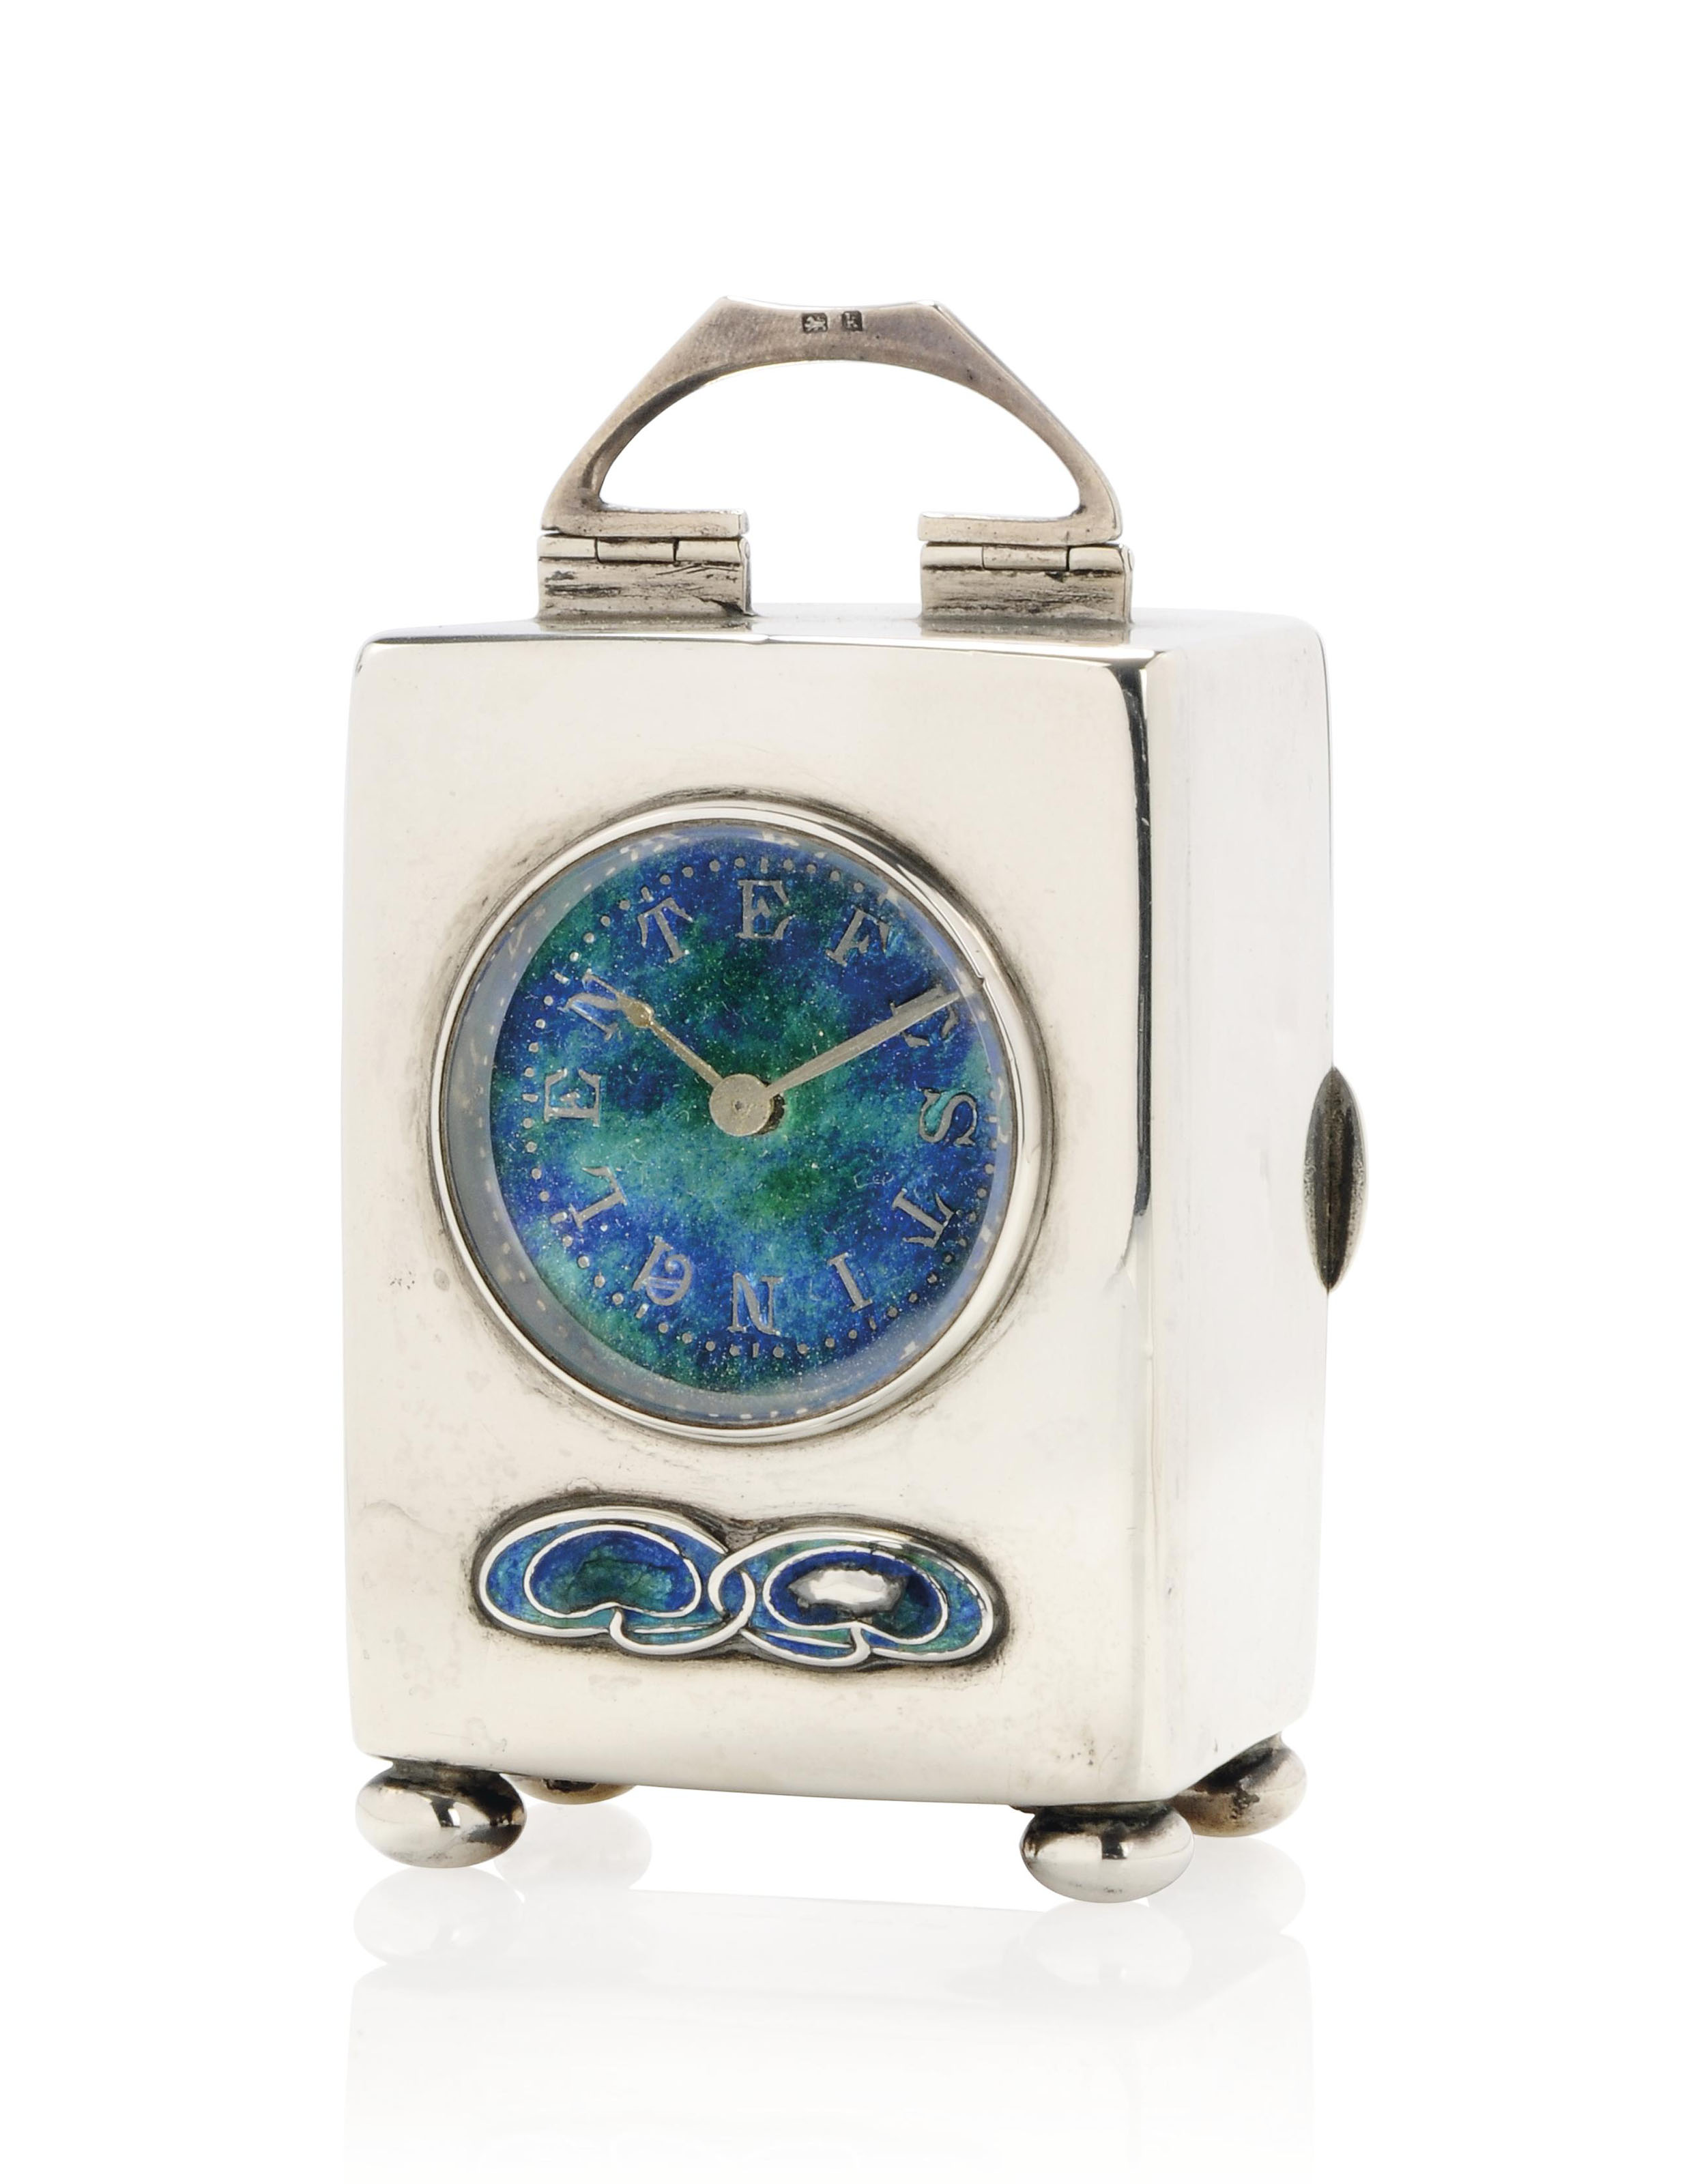 A SMALL LIBERTY & CO SILVER AND ENAMEL TIMEPIECE